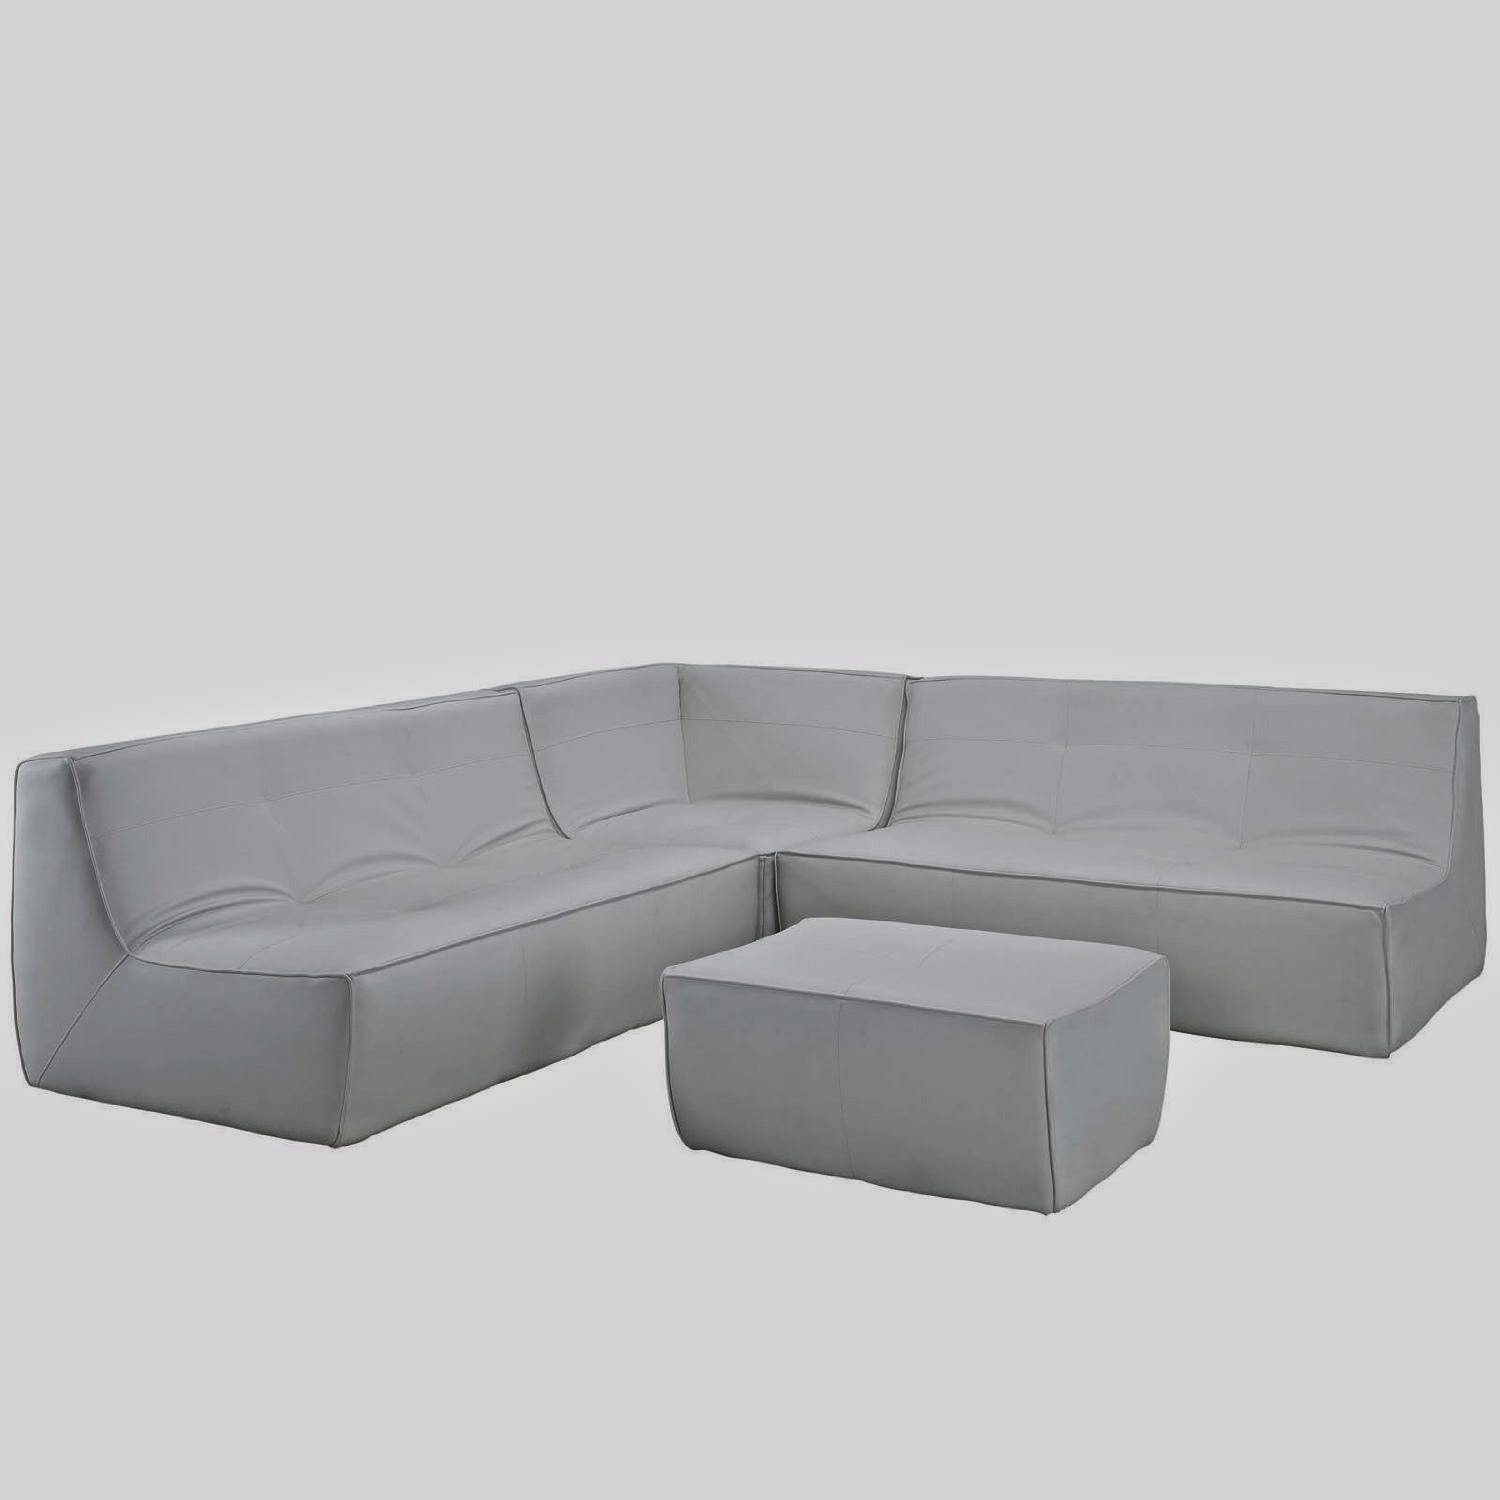 White Leather Couch Curved White Leather Couch